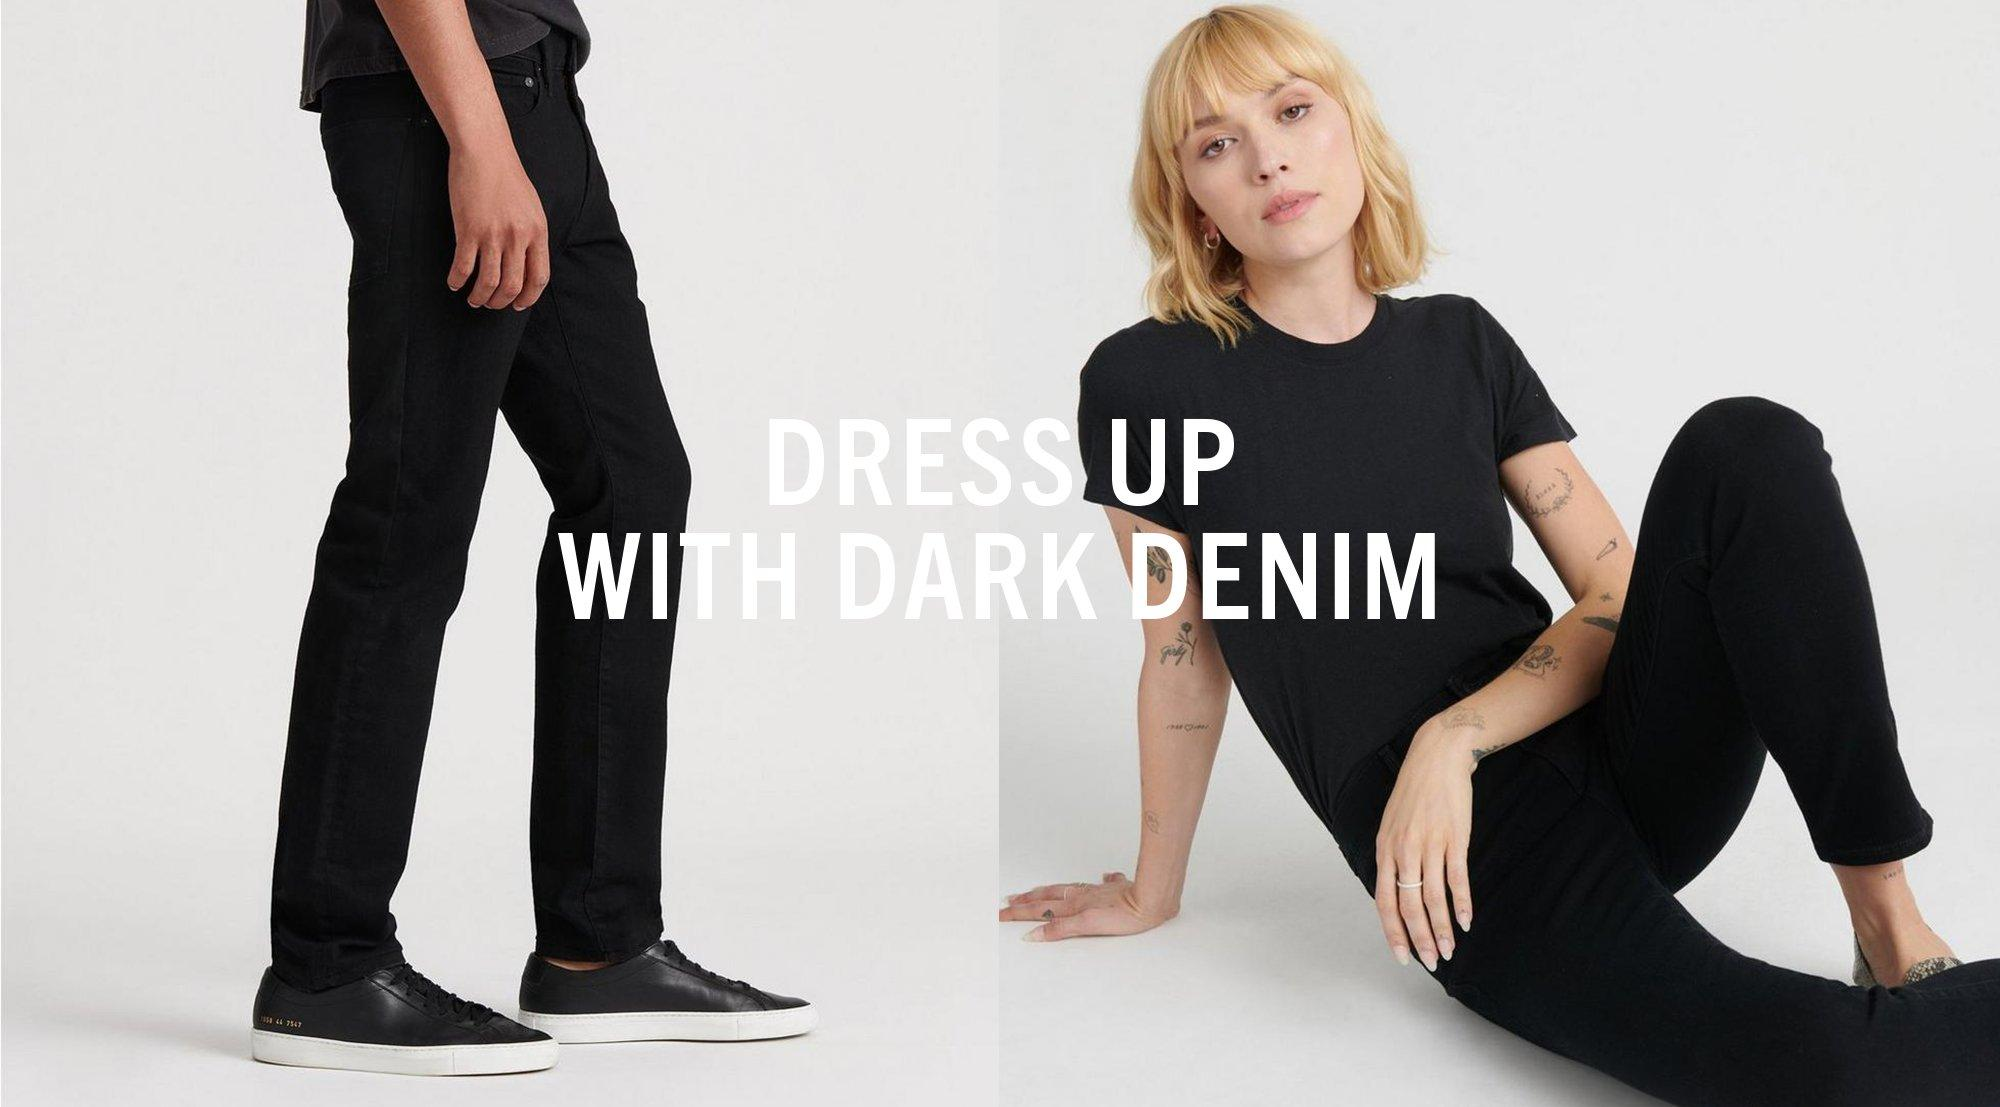 Dress up with dark denim